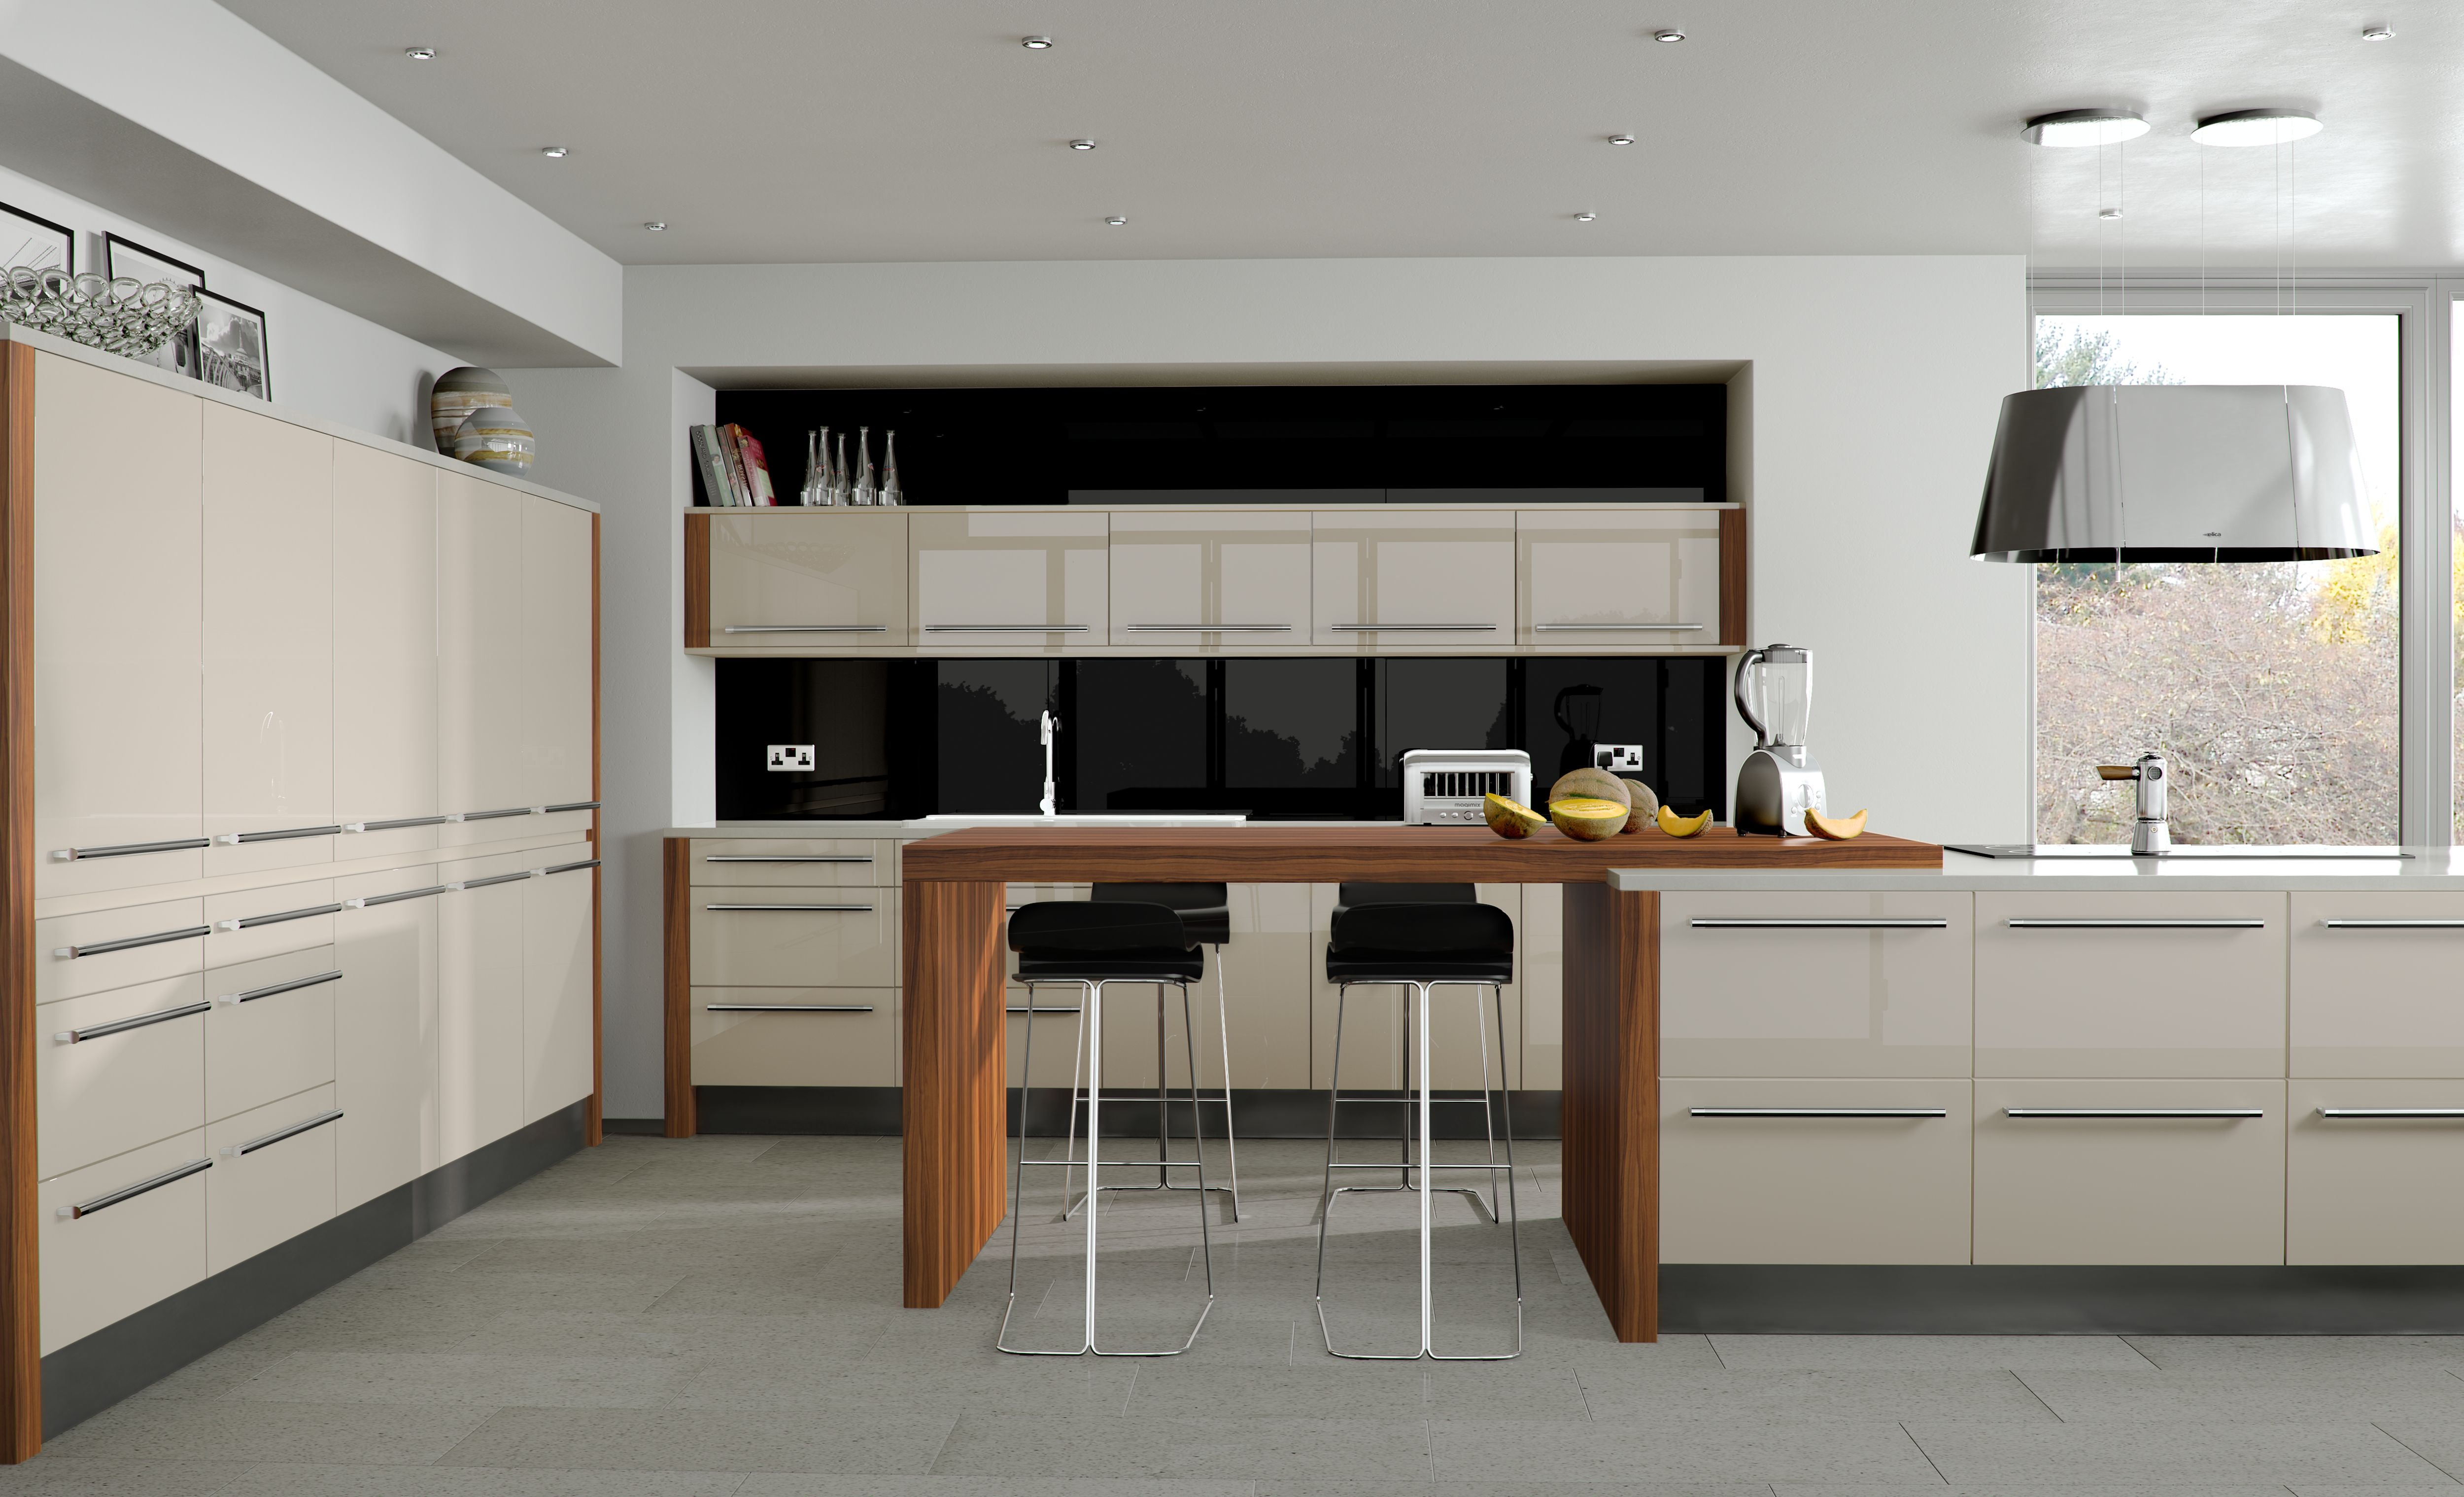 High gloss kitchen cupboards kitchen designs cape town south africa - Odyssey Acrylic Cream Gloss Fresh Colours With Fixed Stools Around The Central Island Thumbs Up Modern Kitchenswhite Kitchensbeautiful Kitchenshigh